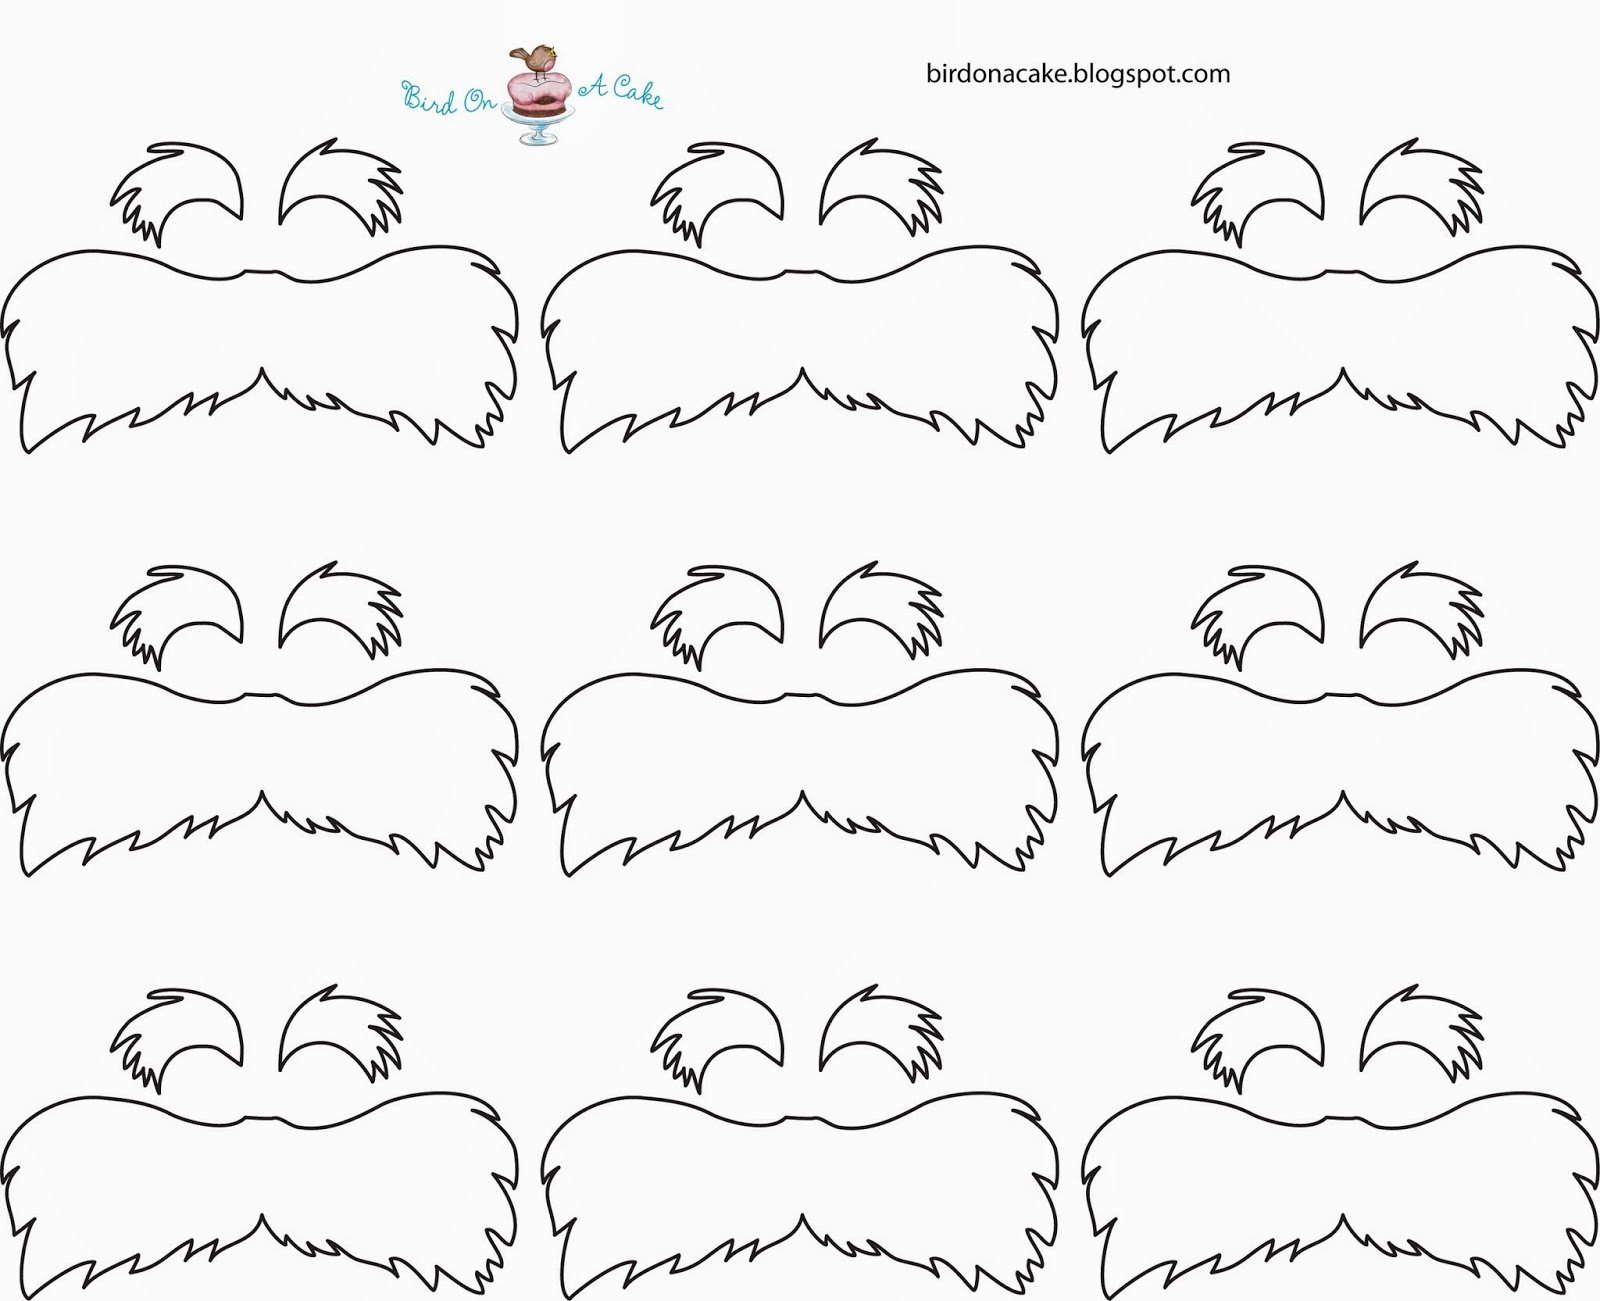 Lorax Mustache Printable Best Of Bird A Cake Dr Seuss the Lorax Cupcakes